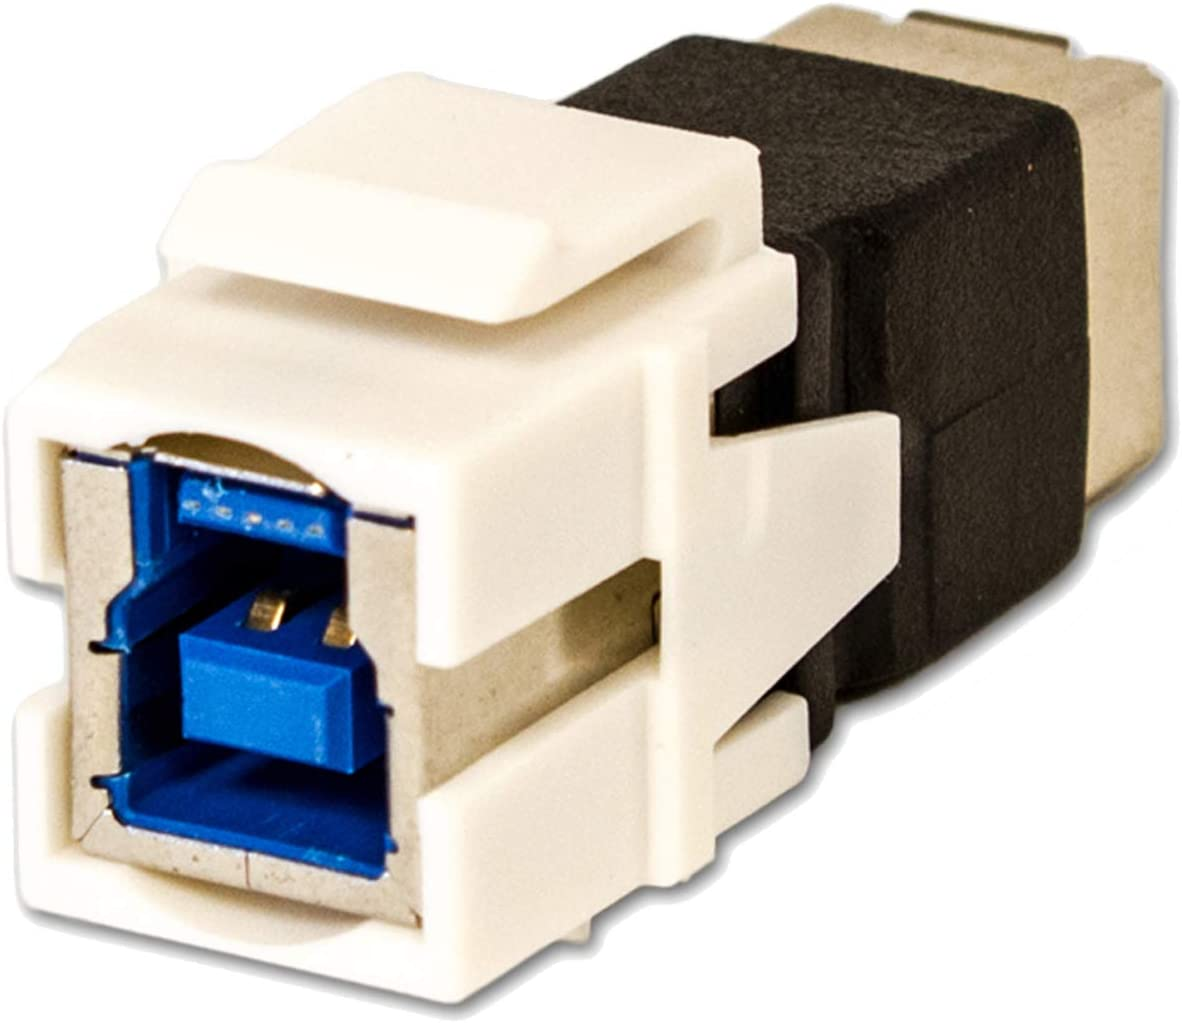 4x USB 3.0 A Female//F Snap-in Coupler Jack Insert for Keystone Wall Plate